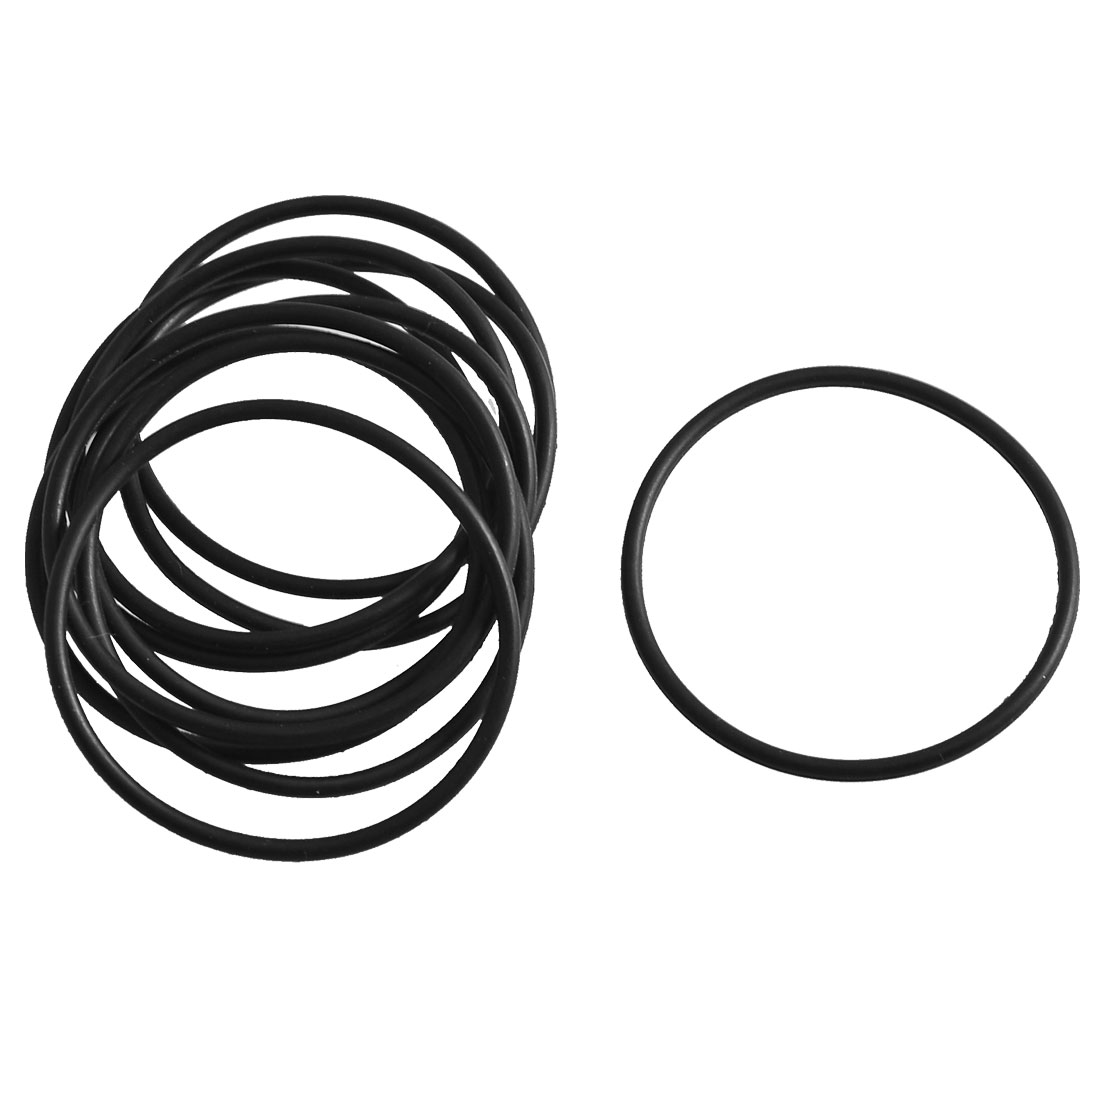 uxcell 10PCS Black Rubber Oil Filter Seal O Rings Gaskets 50mm x 48mm x 1mm a14022100ux0147